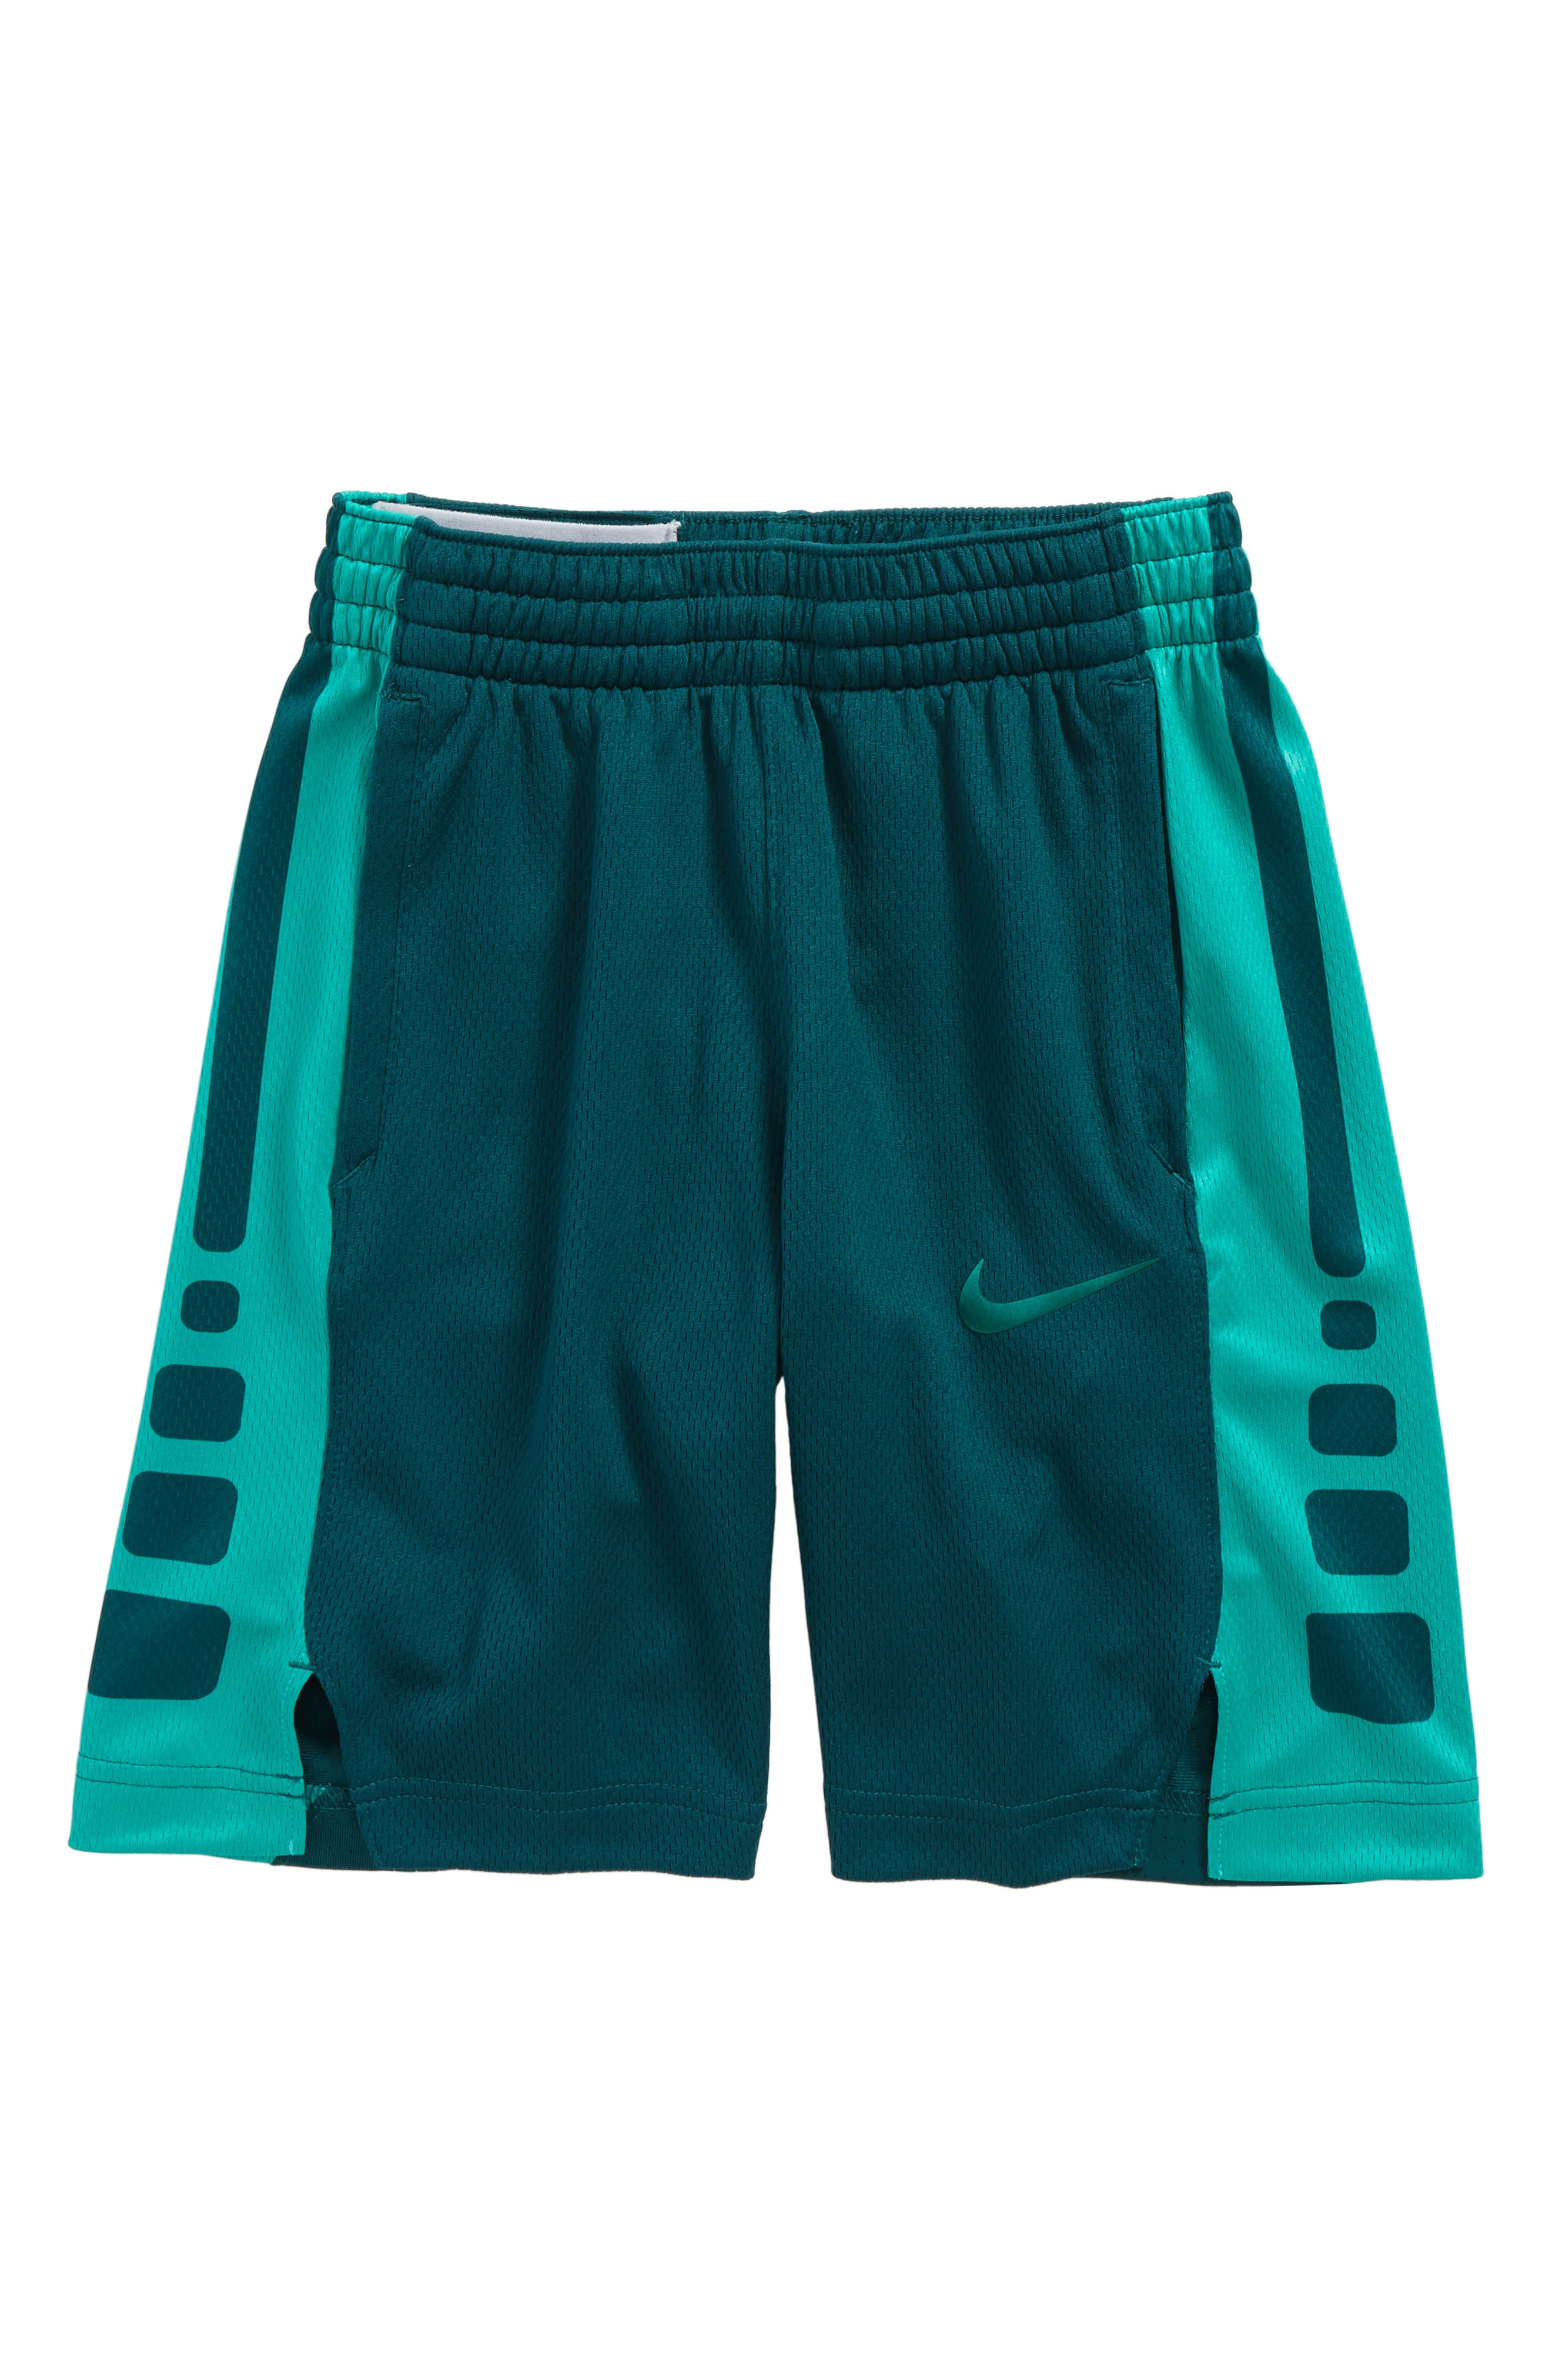 Dry Elite Basketball Shorts,                             Main thumbnail 45, color,